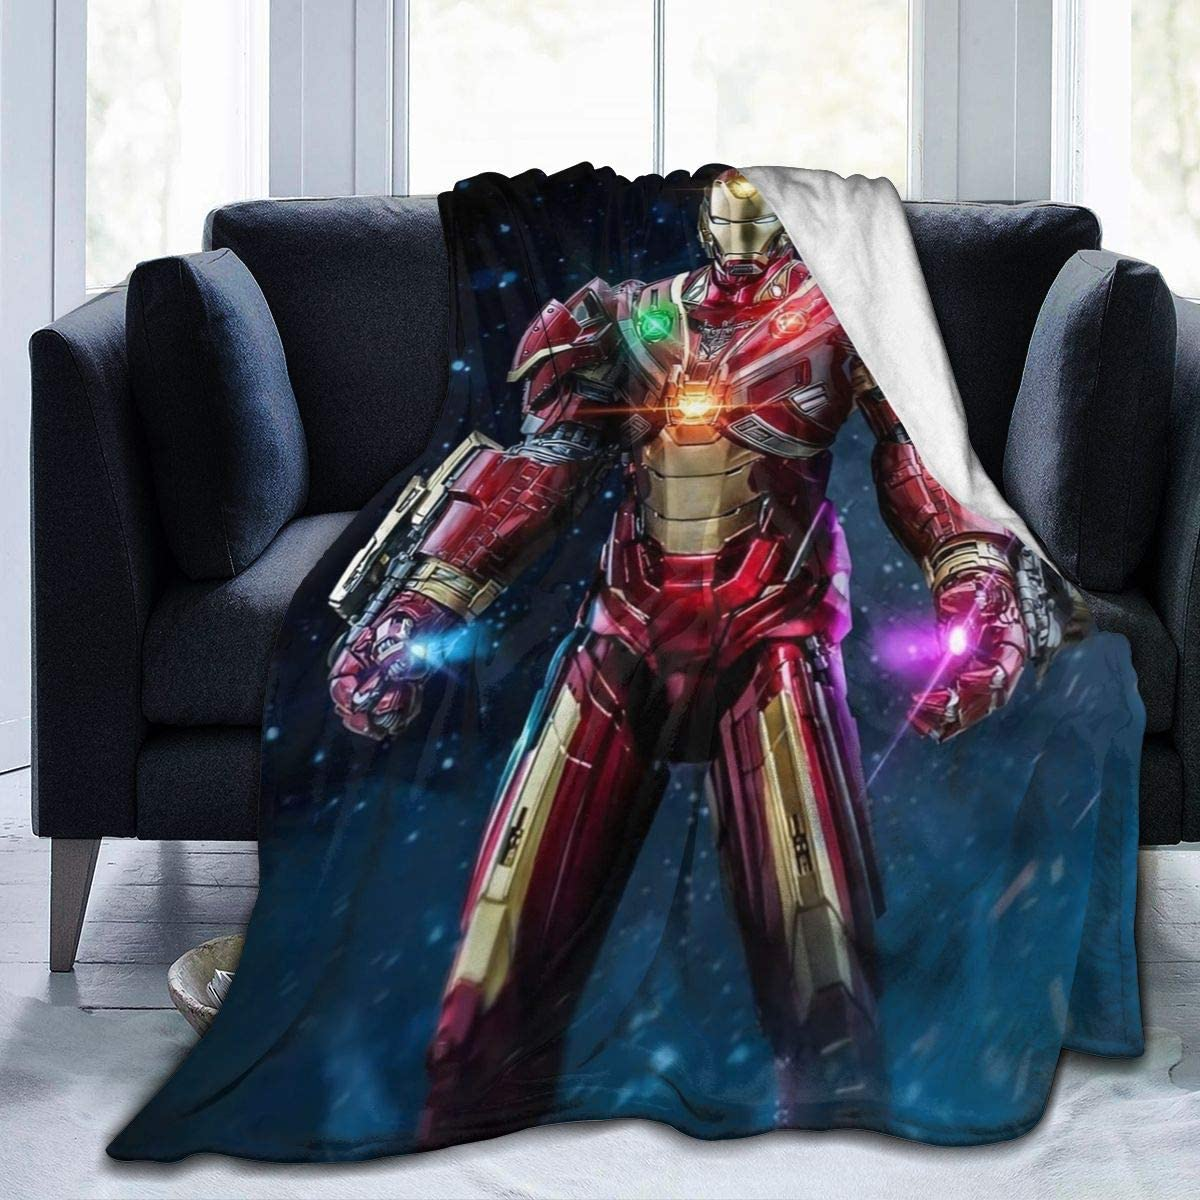 Iron Man Throw Blanket-Soft Warm and Cozy Light Weight Fleece Throw Blanket Bed Couch and Living Room for Kids Adults Gift.